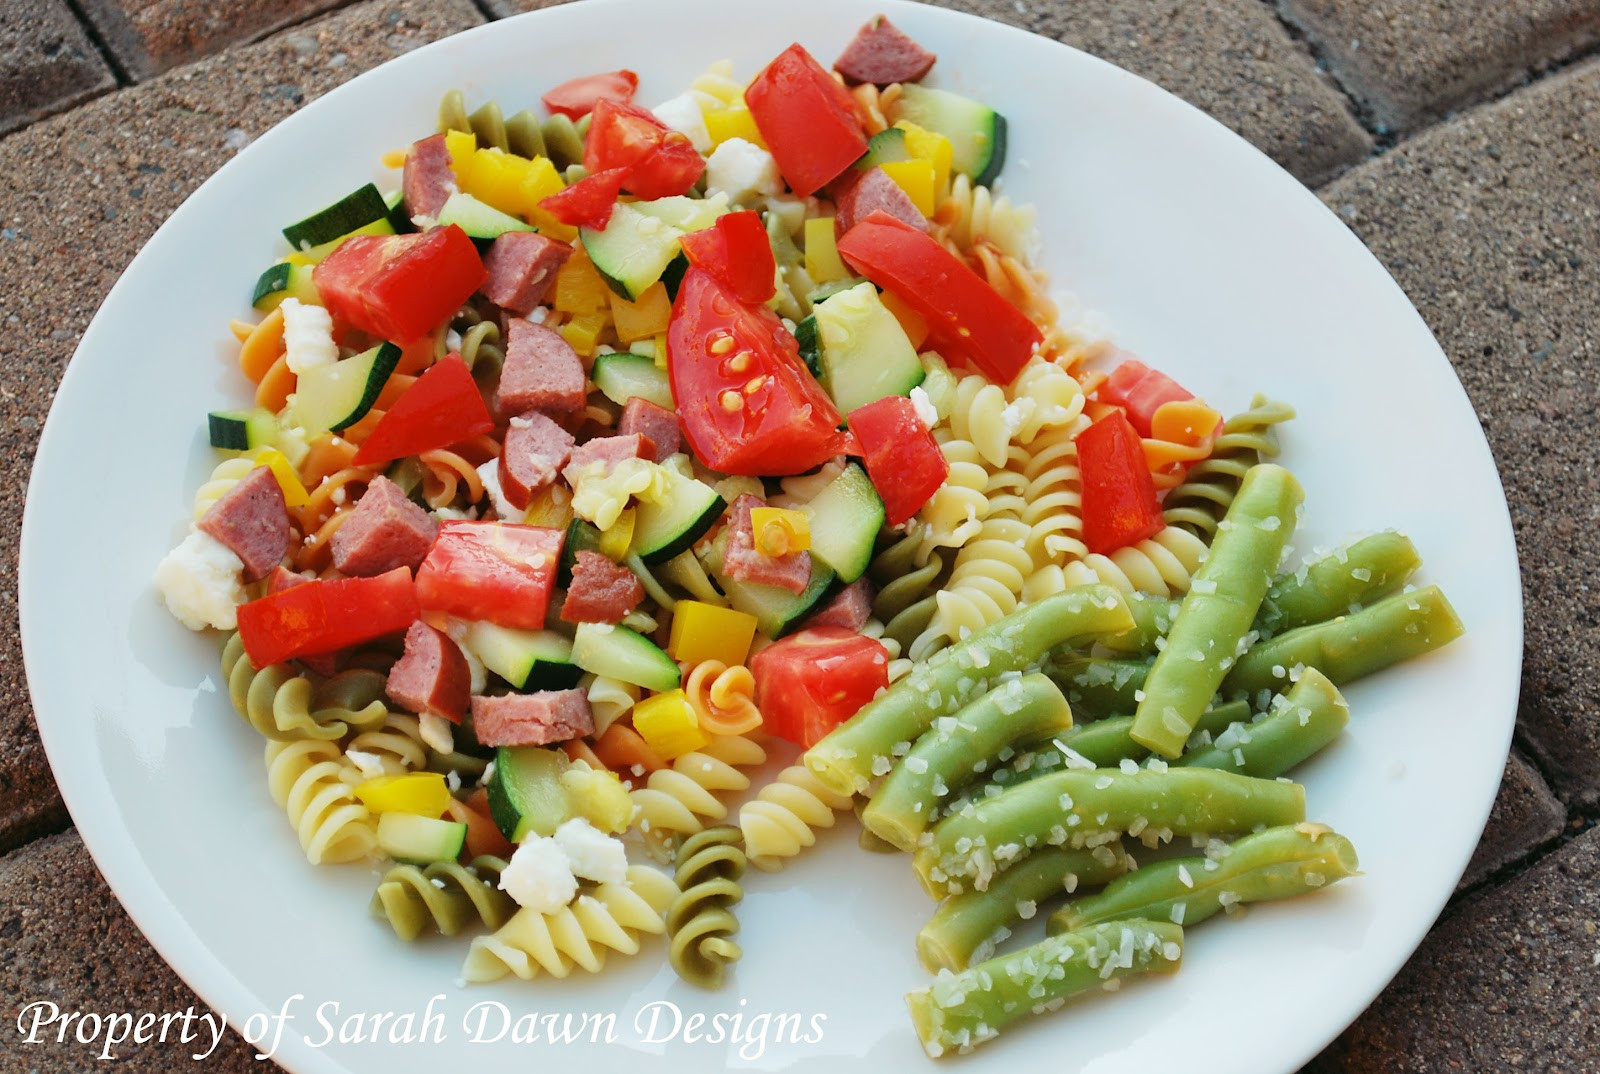 Healthy Light Dinners  Sarah Dawn Designs 20 Minute Meals Light and Healthy Pasta